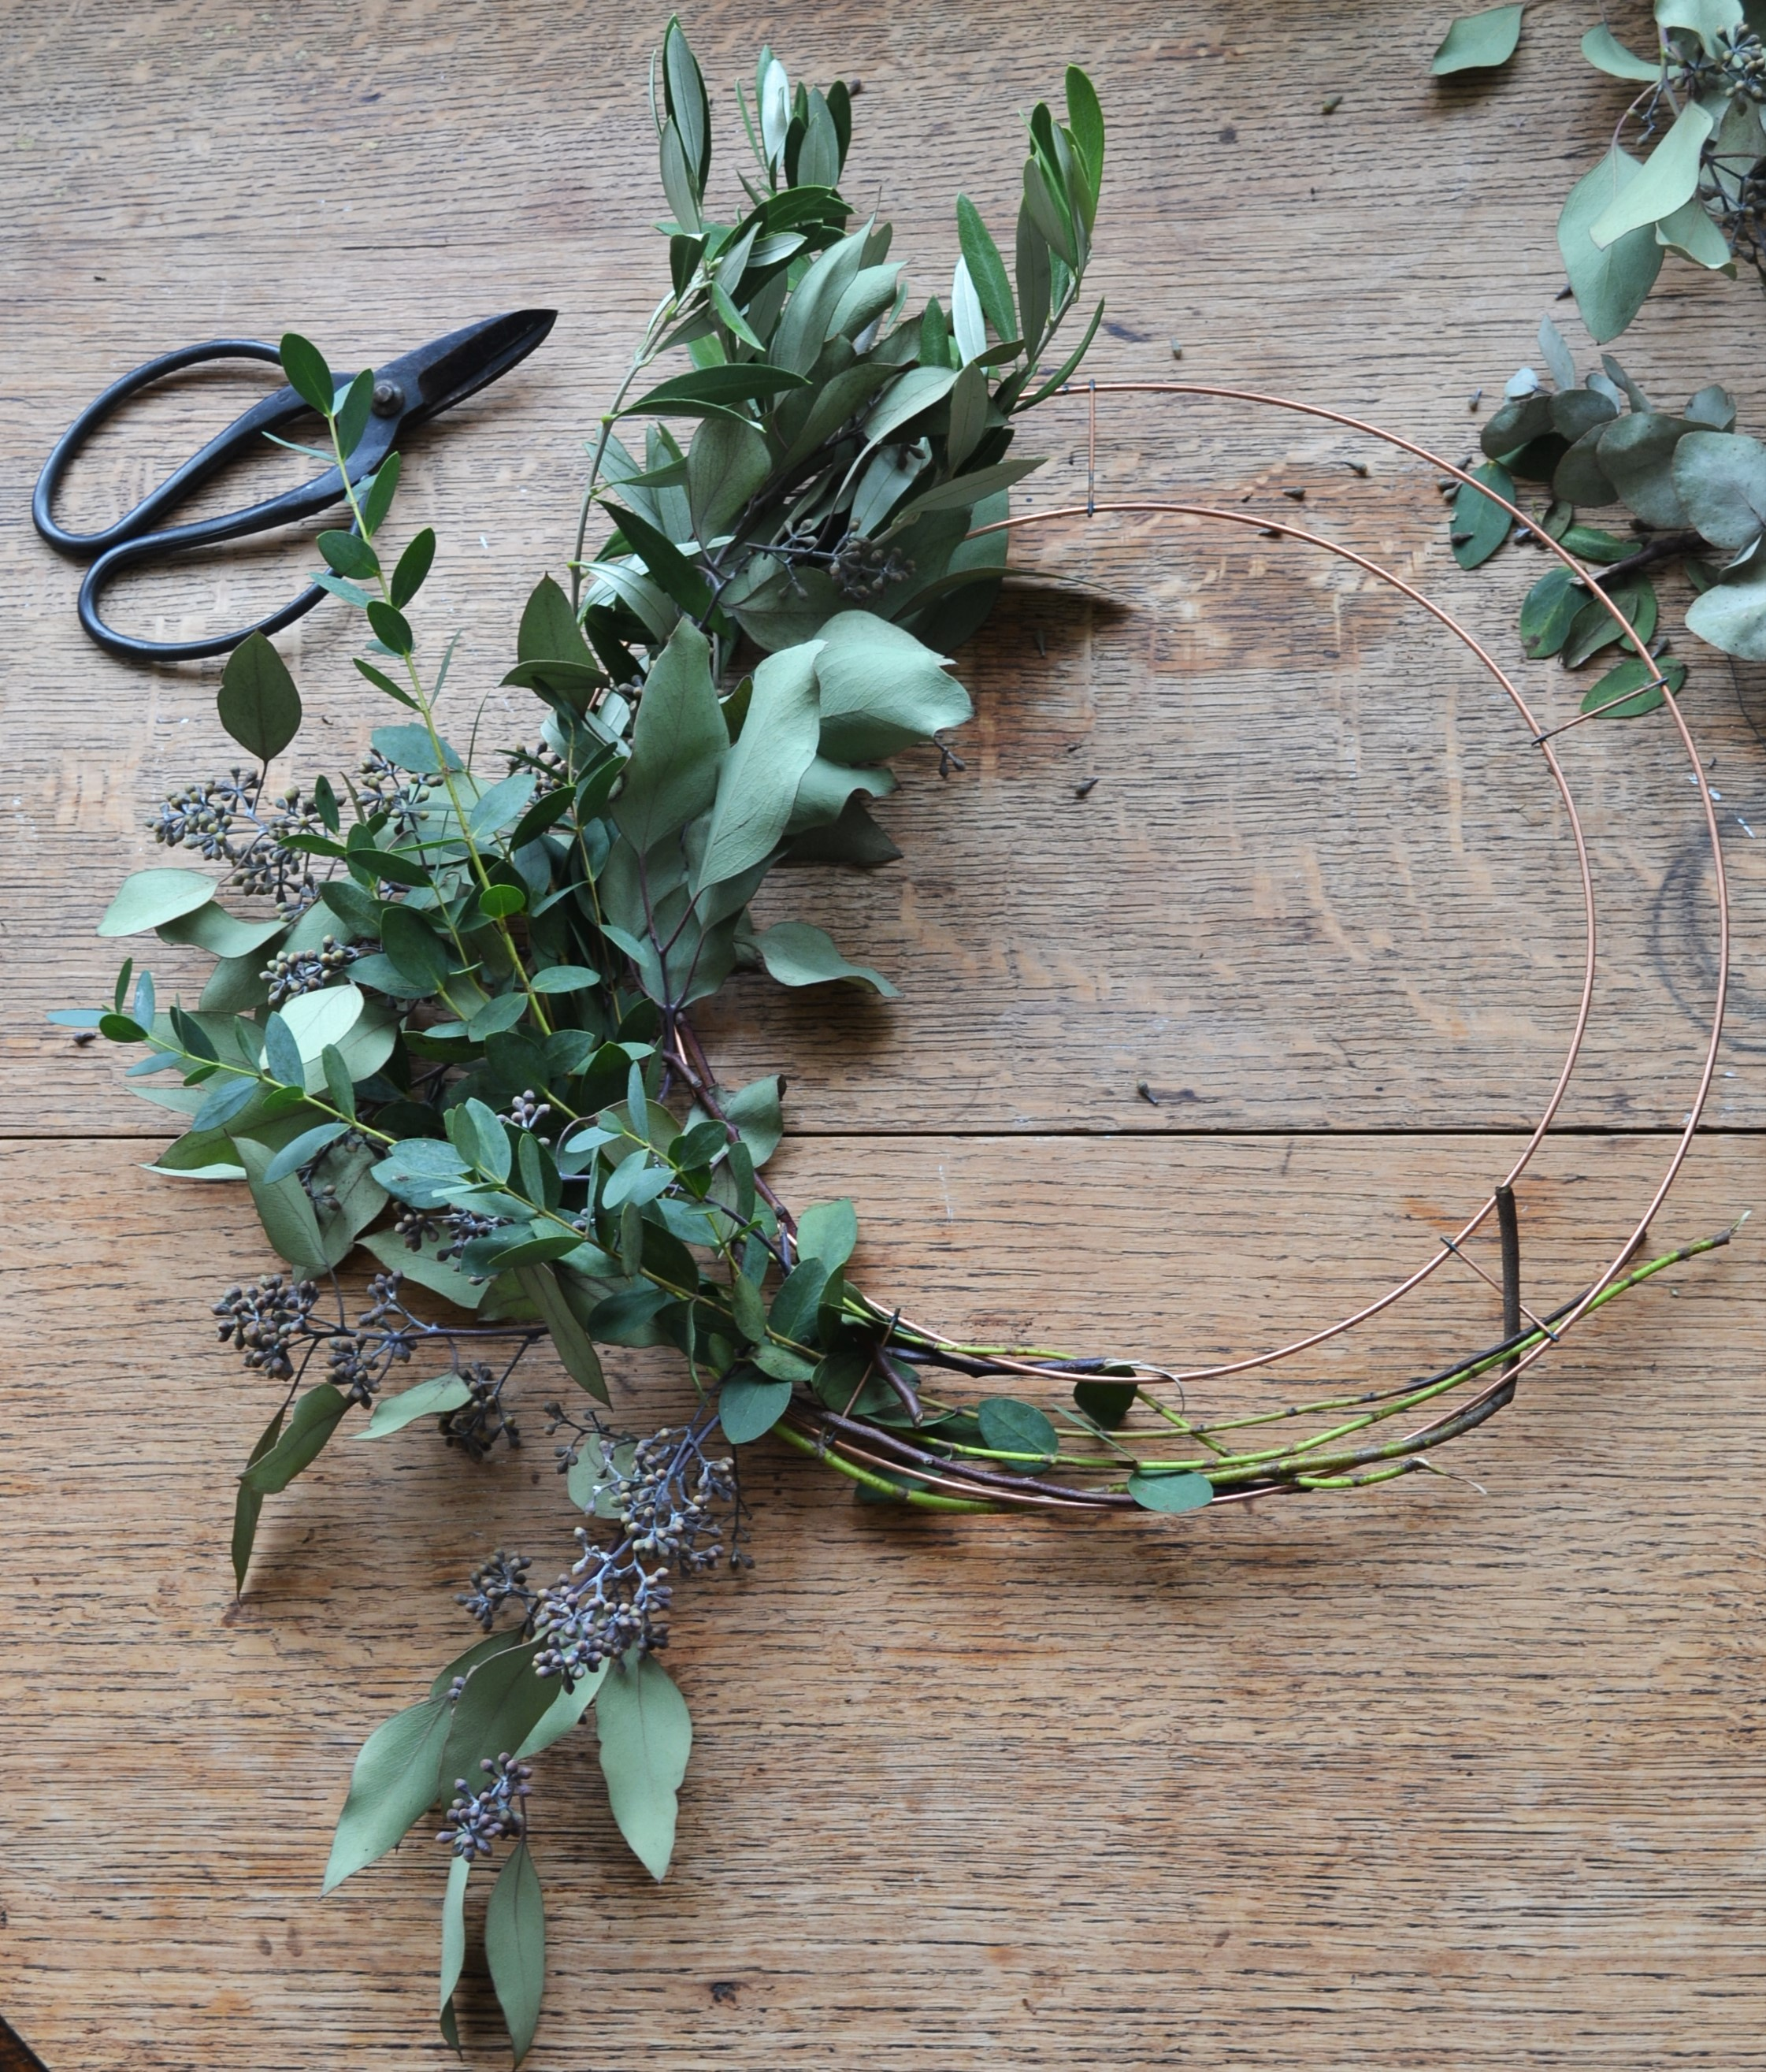 How-to-make-an-autumn-wreath-webb-and-farrer-brighton-flower-workshop (3).JPG